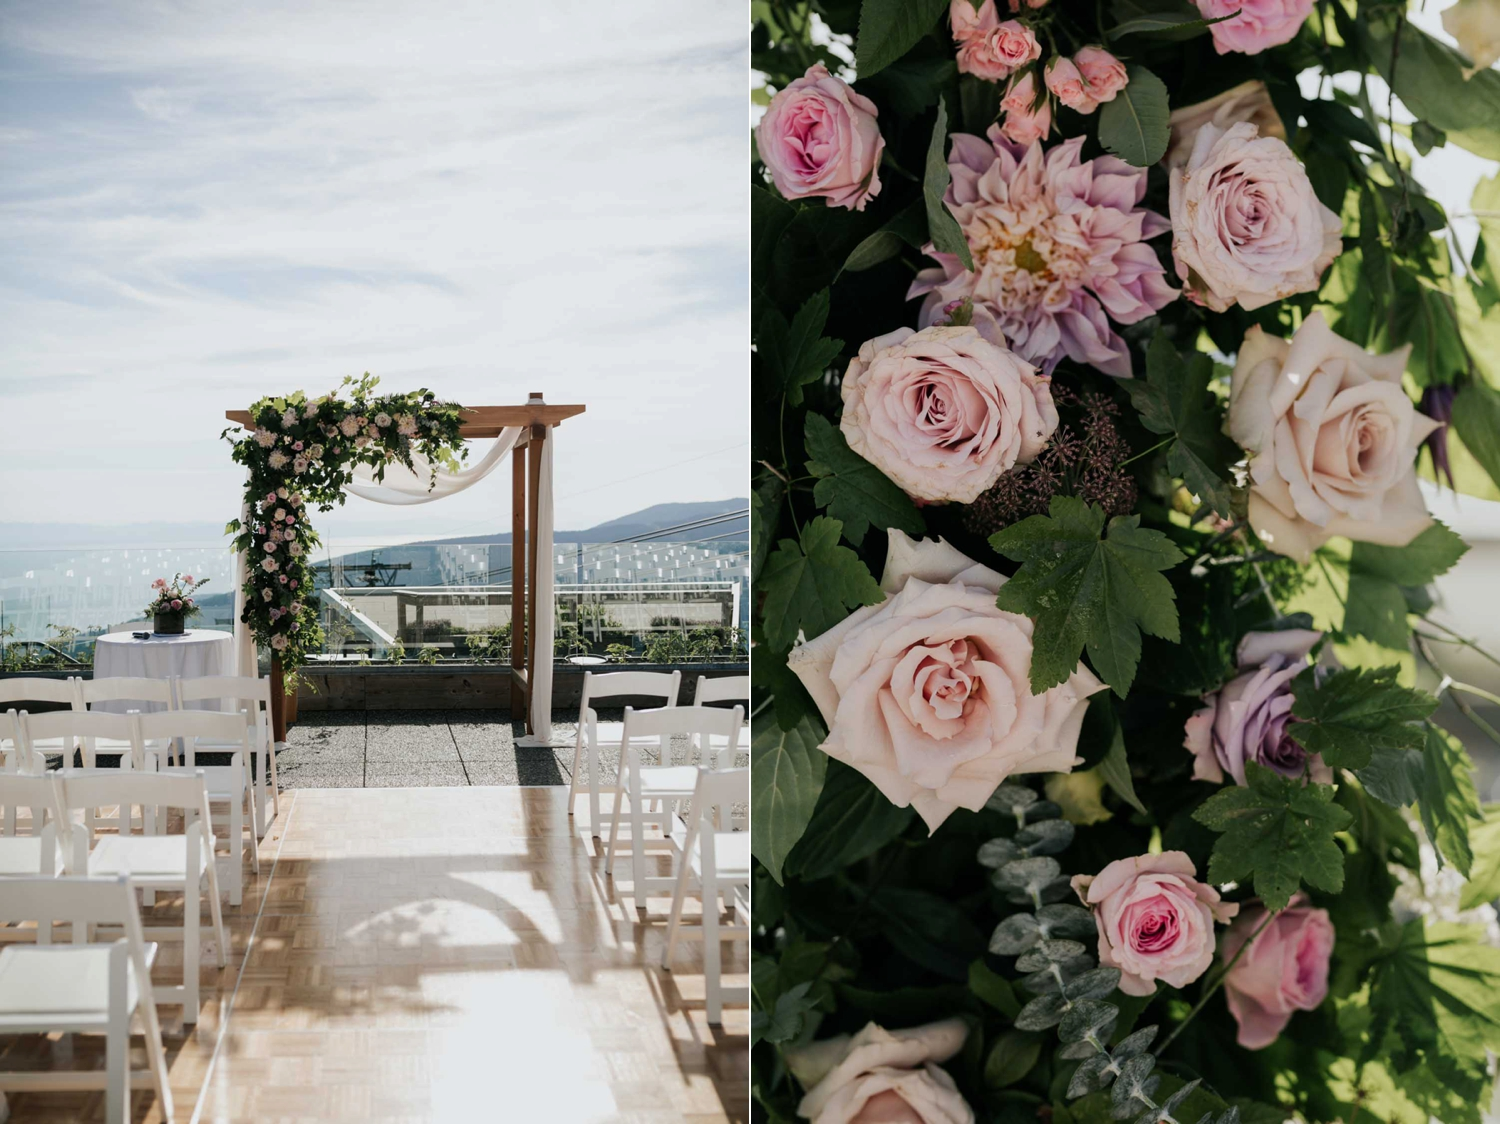 Flower Wedding Arch Ceremony Altitudes Bistro Vancouver Wedding Venue